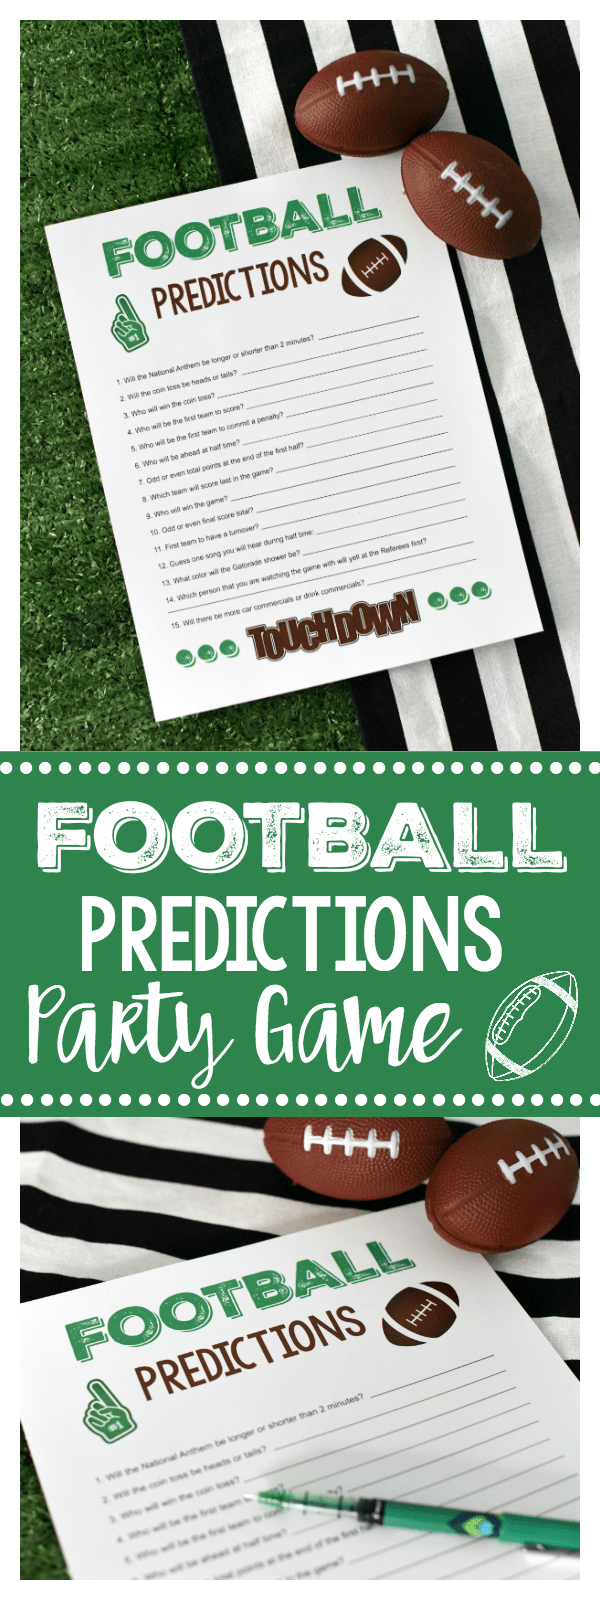 Super Bowl Party Games: Football Predictions (Like Prop Bets) a Great Game for the Whole Family! Let your party guests get into the action with this printable football party game...so fun and simple! #footballparty #footballpartygames #gamedayparty #gamedaygames